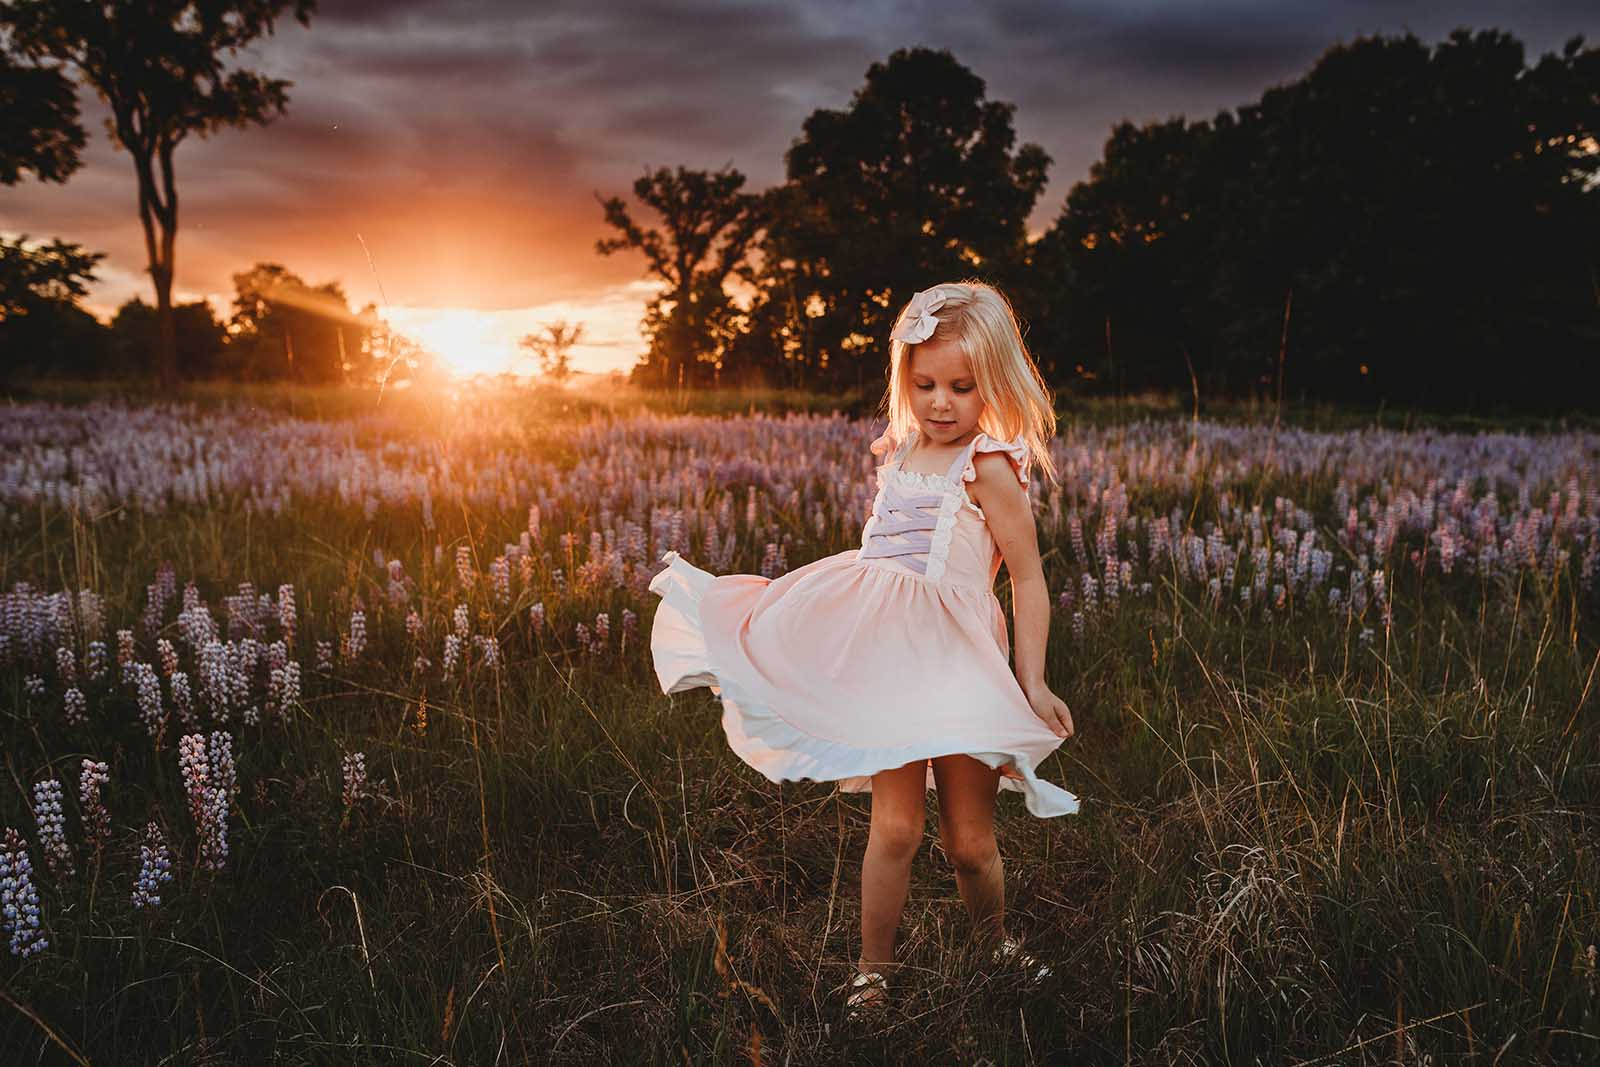 Girl twirling - Use color in photography composition